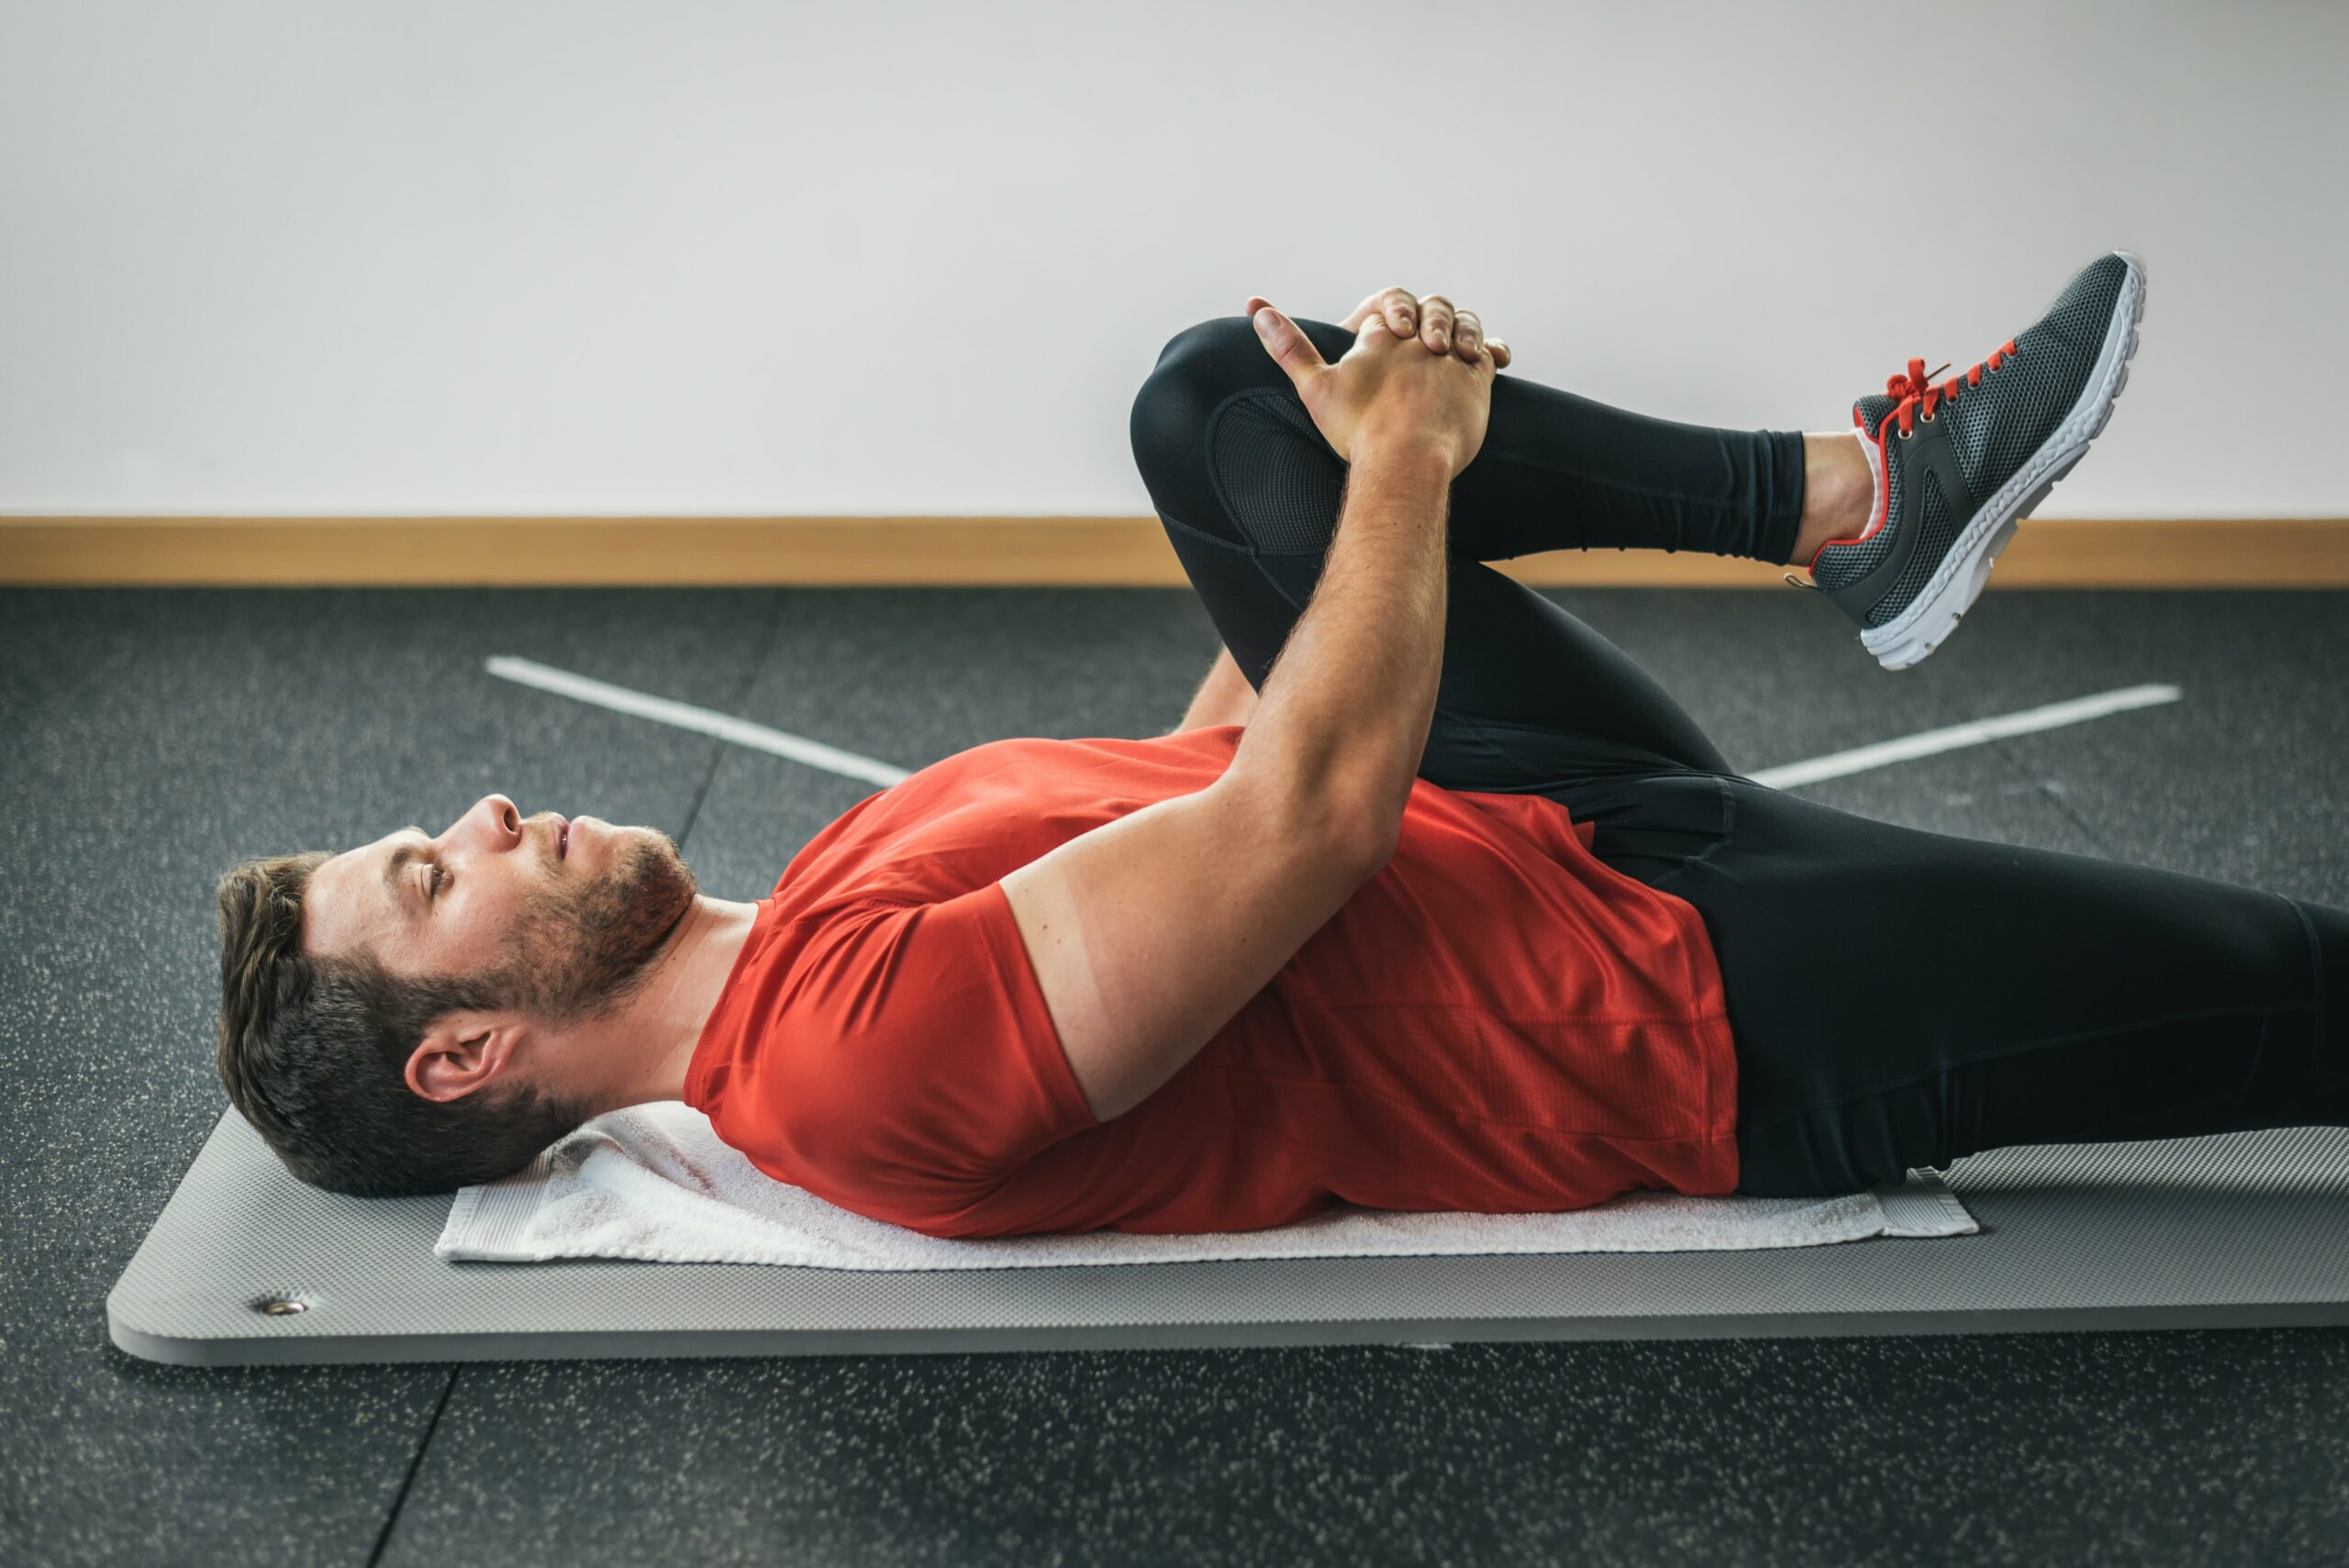 Man laying on yoga mat stretching lower back and leg.